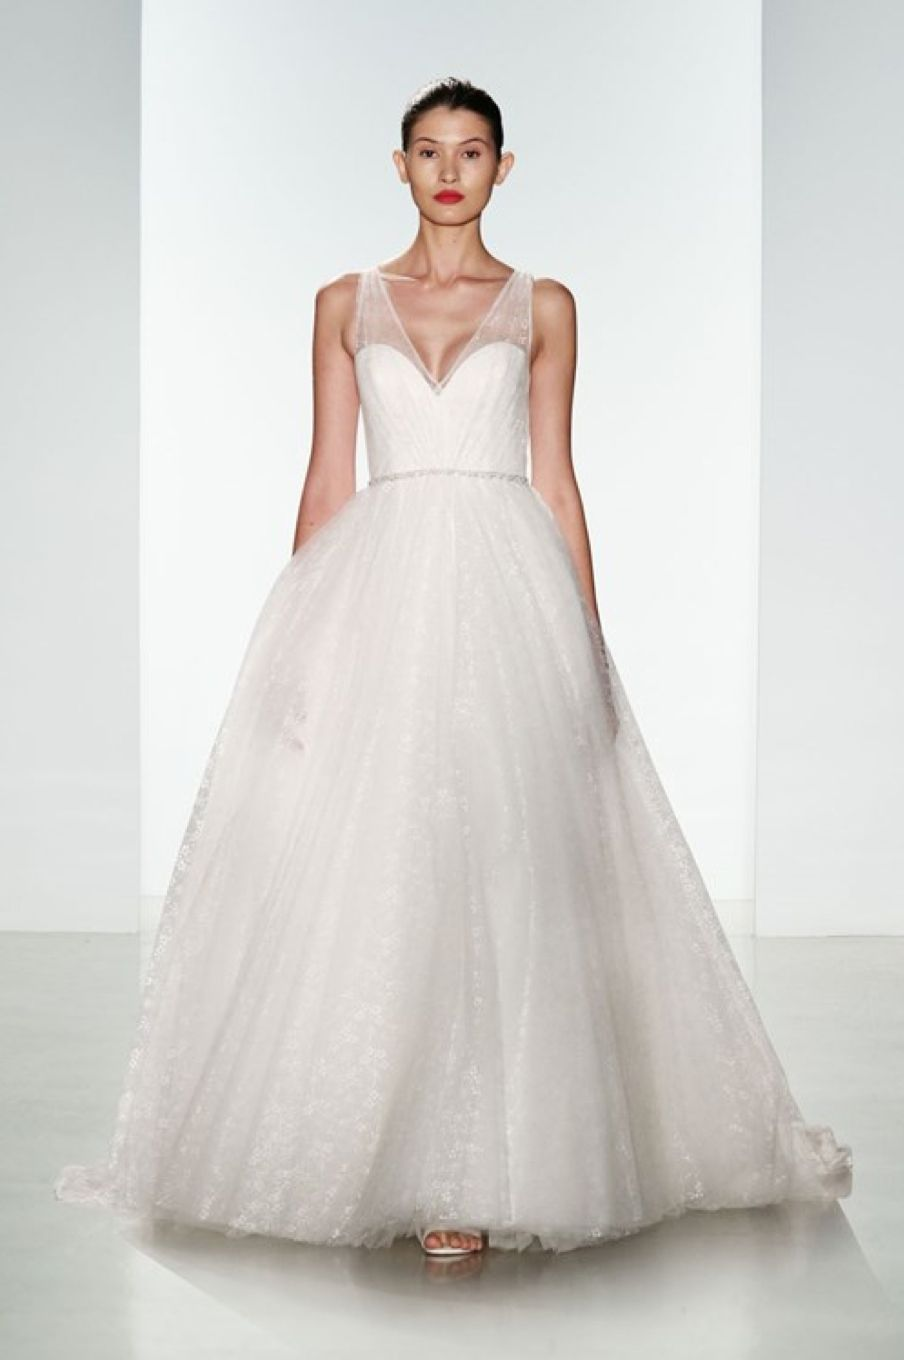 To acquire Wedding Pink dress kleinfeld picture trends